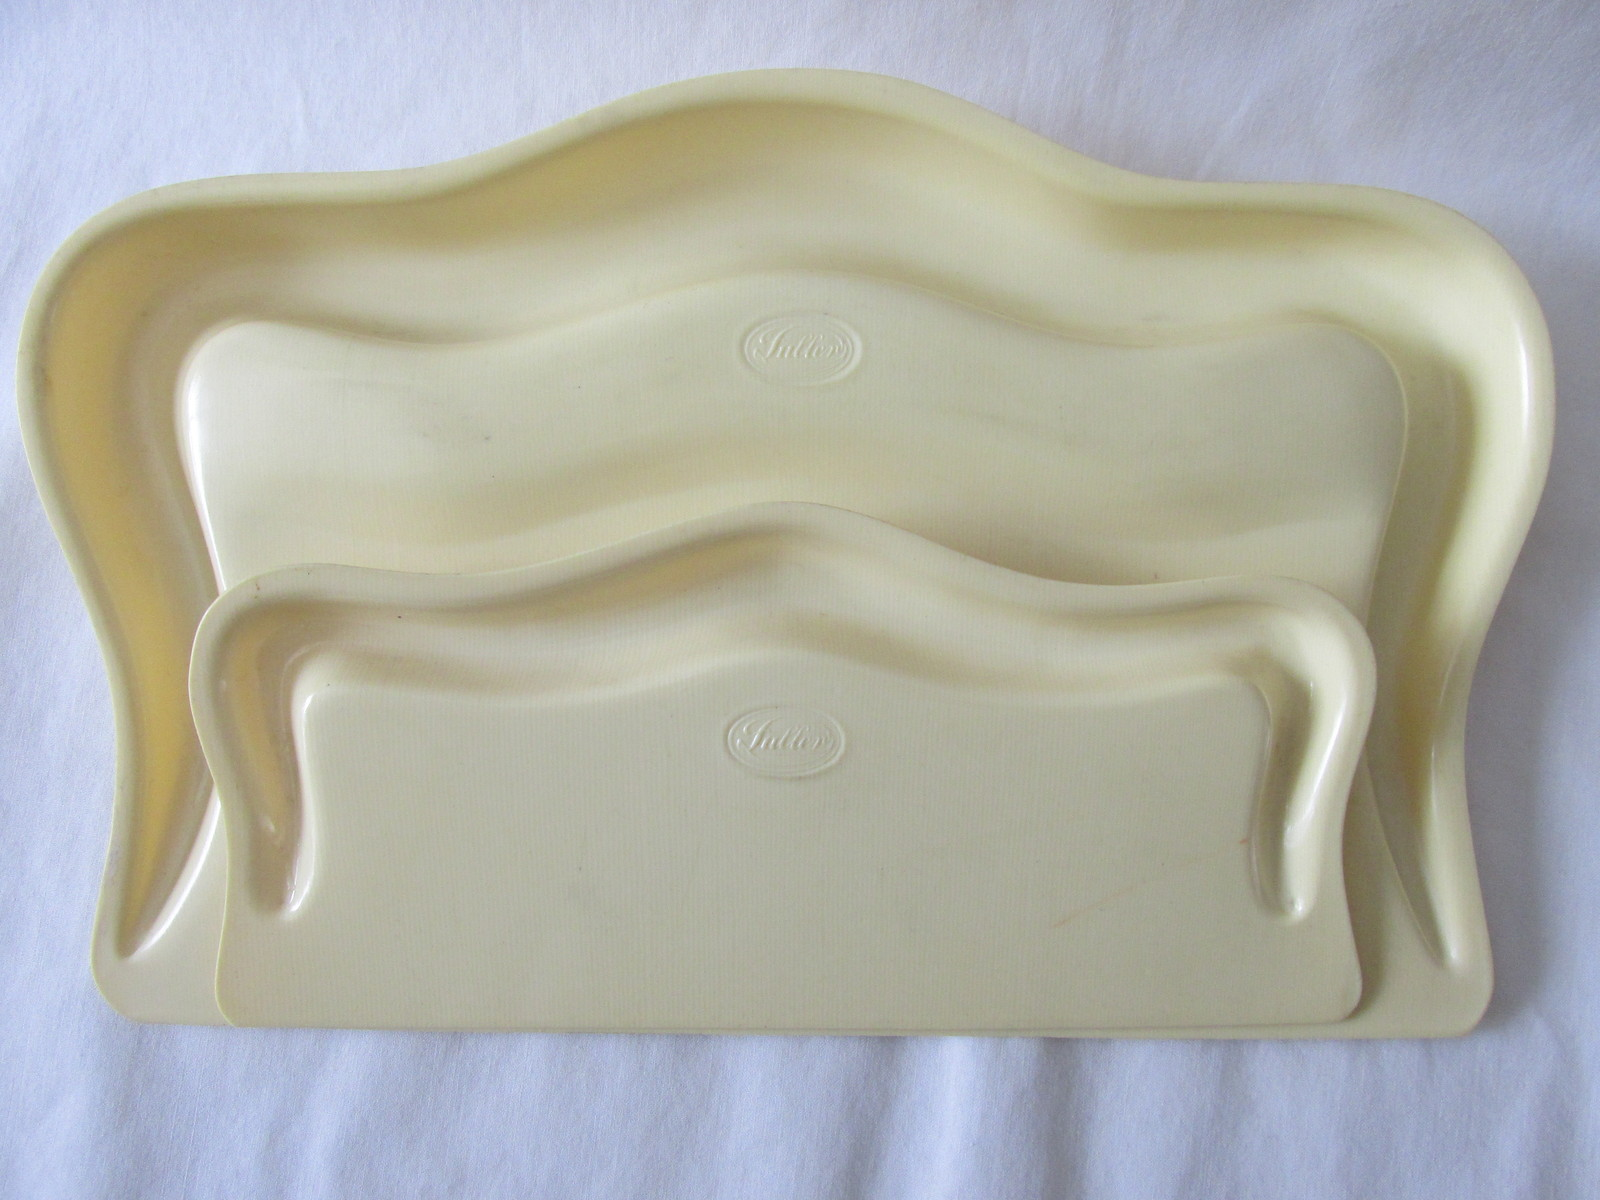 Vintage Fuller Brush Company Two Piece Crumb Caddy Set, Celluloid / Plastic